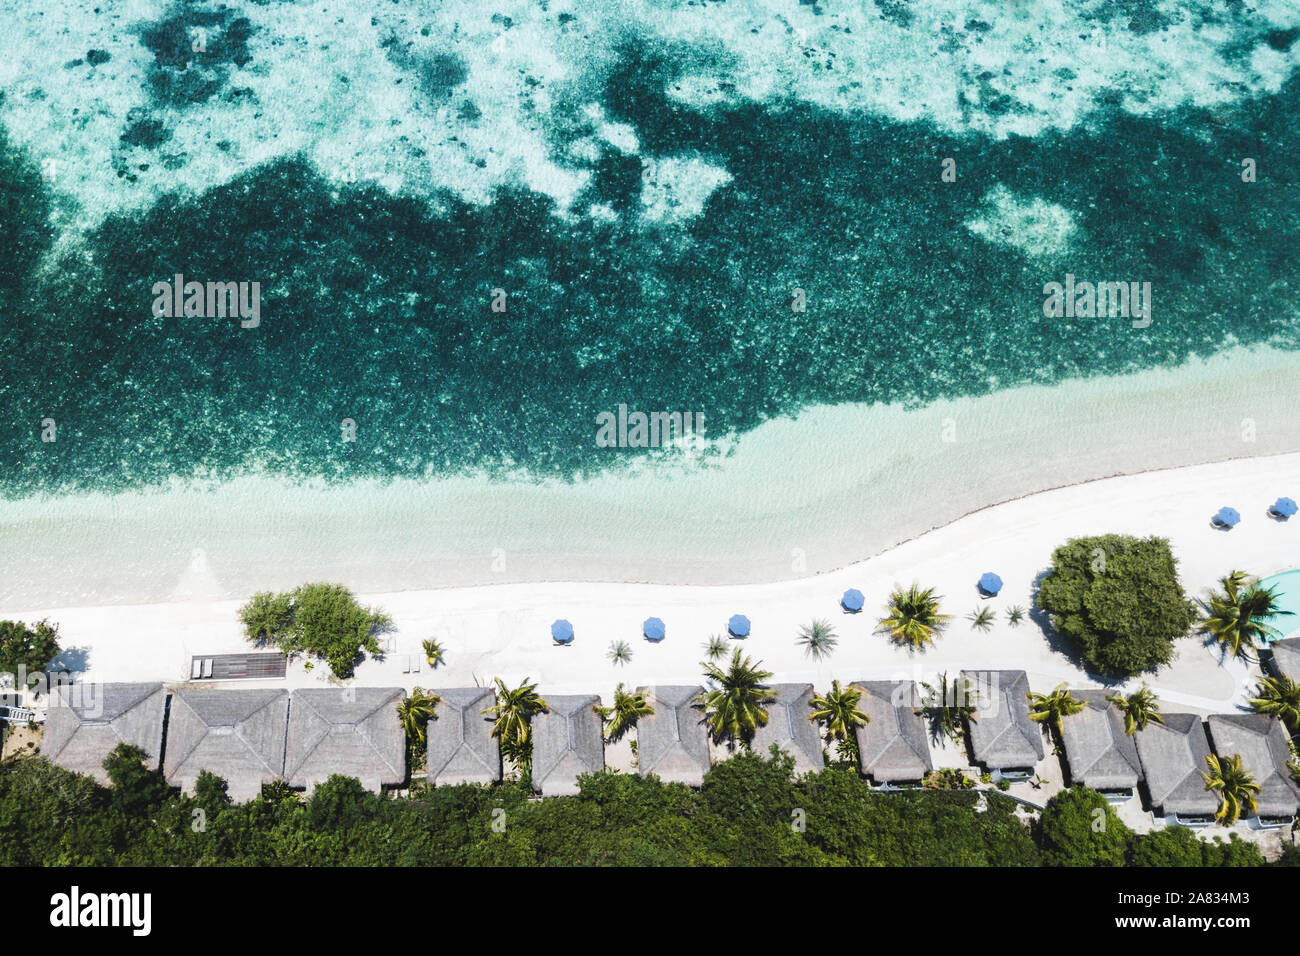 Aerial view of tropical white beach with blue umbrellas, coral reef and palms. Abstract drone shot from above. Travel and vacations concept. Stock Photo